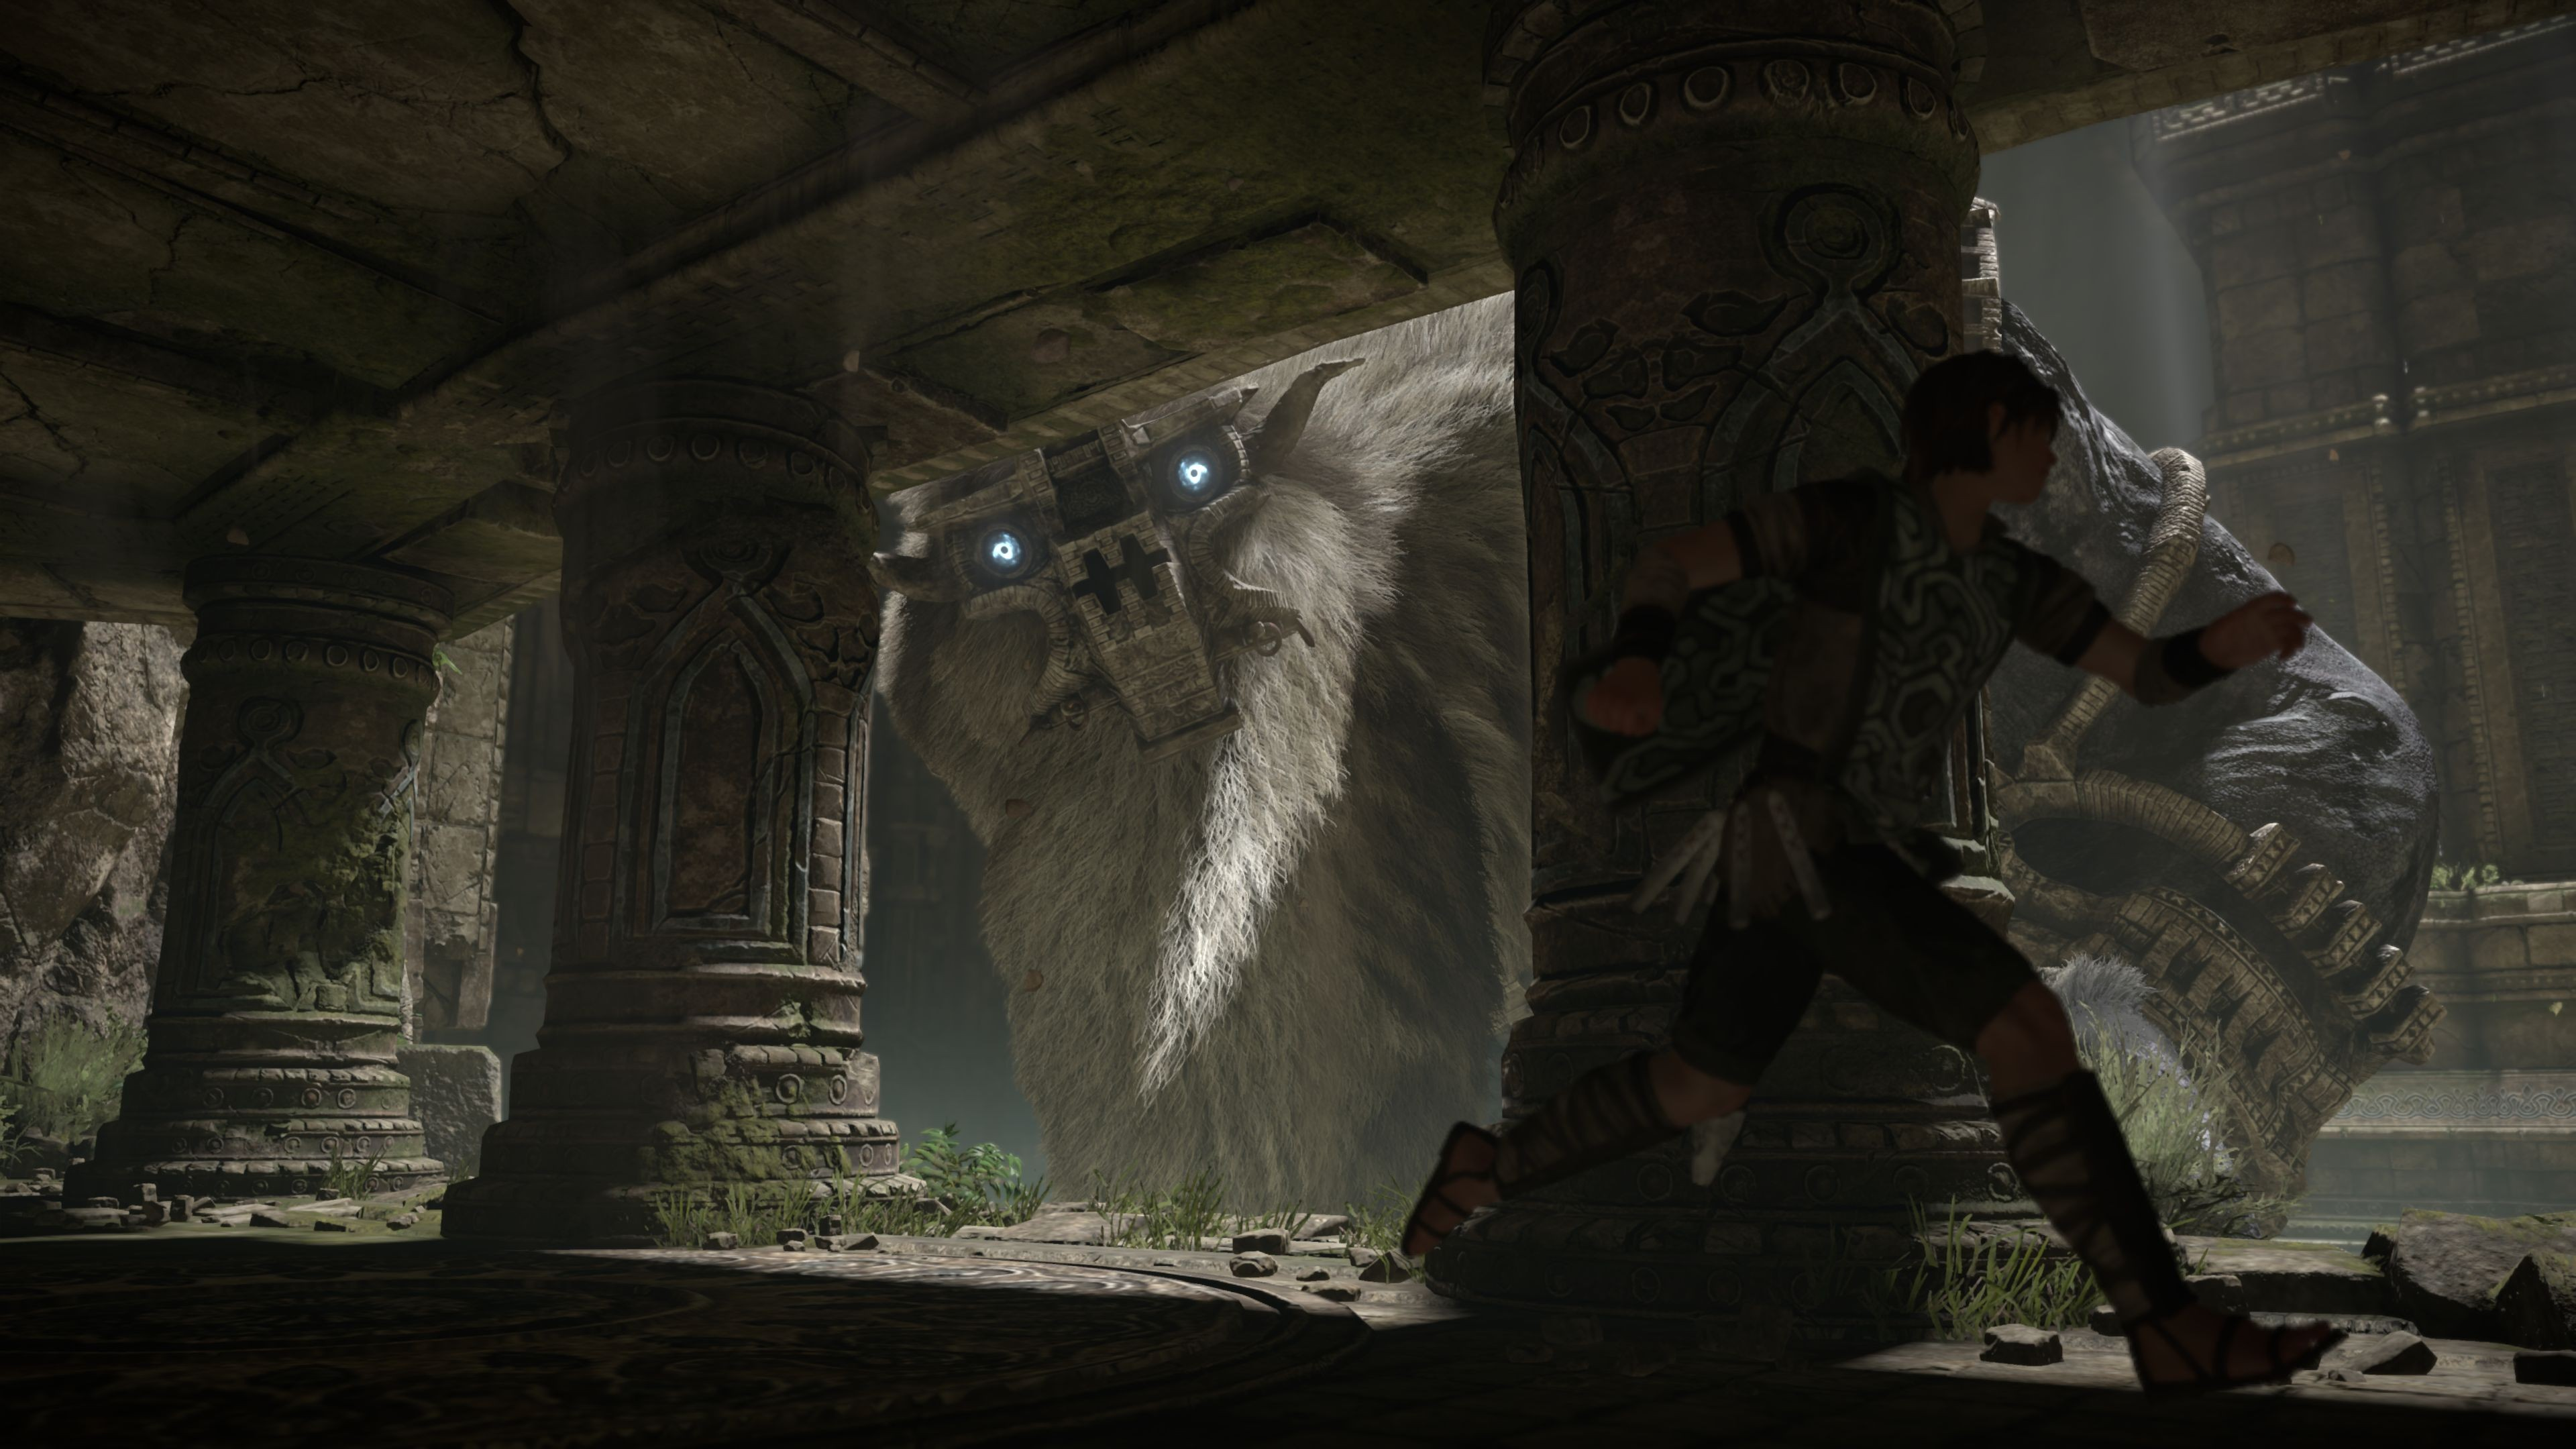 Shadow Of The Colossus Ps4 Wallpaper: Wallpaper Shadow Of The Colossus 2, Tokyo Game Show 2017